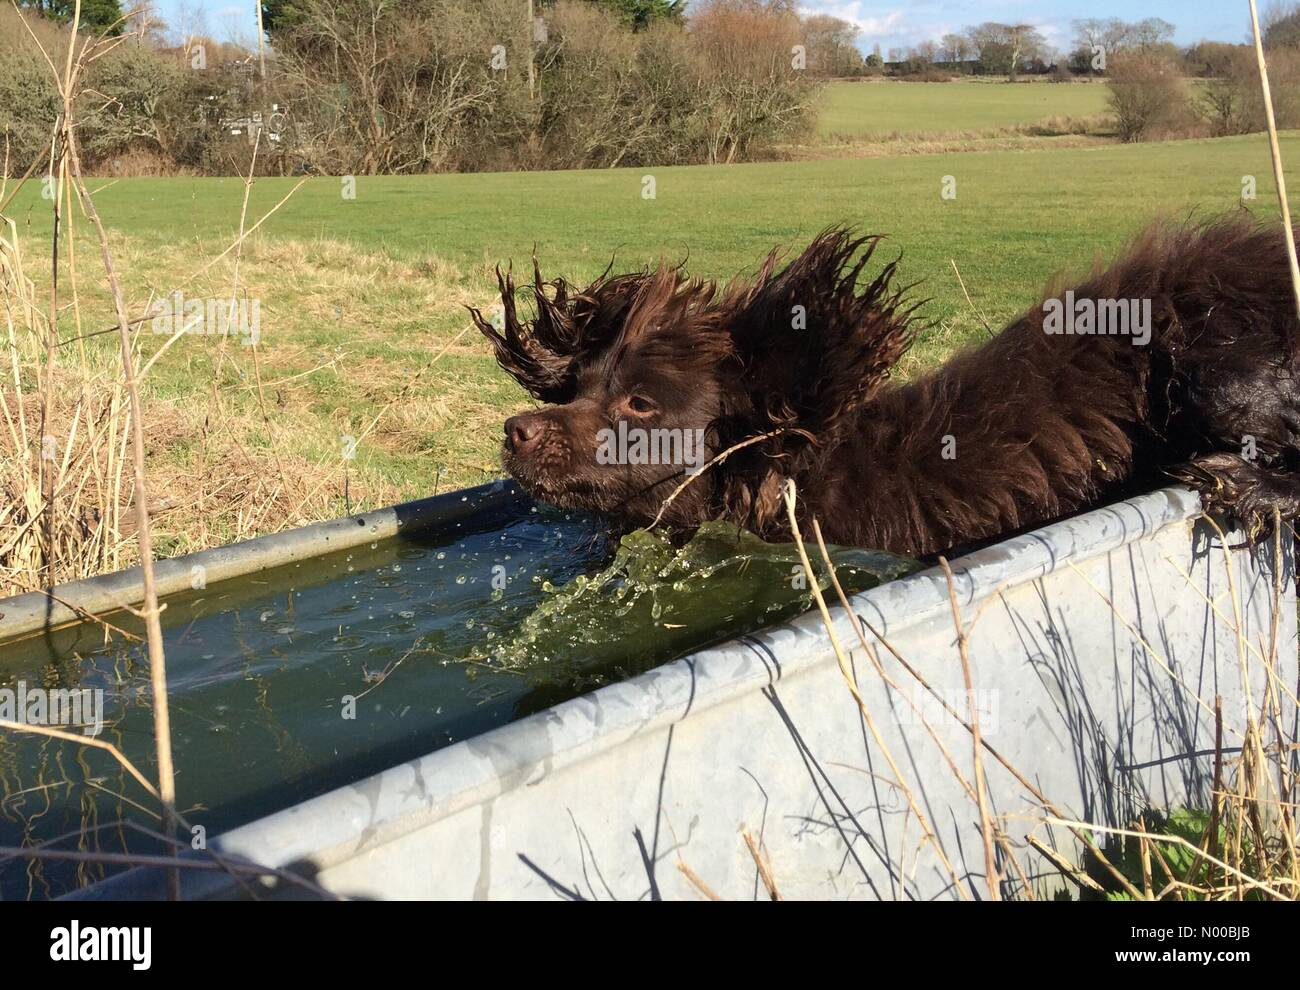 Ripe, East Sussex. 9th March 2017. Cocker spaniel, Fudge, cooling off in a cattle trough at temperatures reach 16.5 - Stock Image